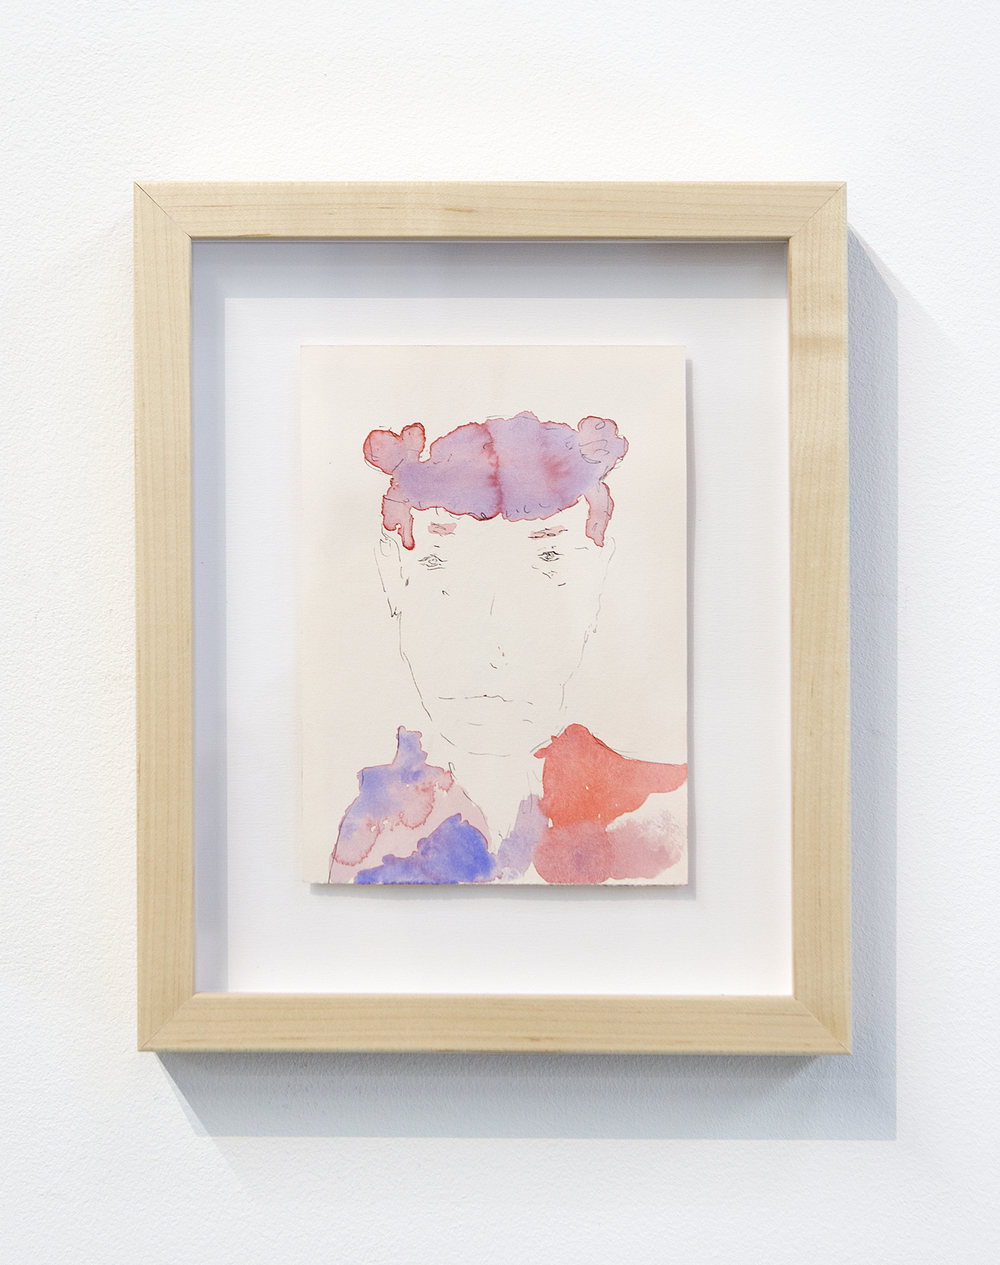 Henry Hopper,   Untitled  , 2015, watercolor and pen on paper, 7 x 5 inches